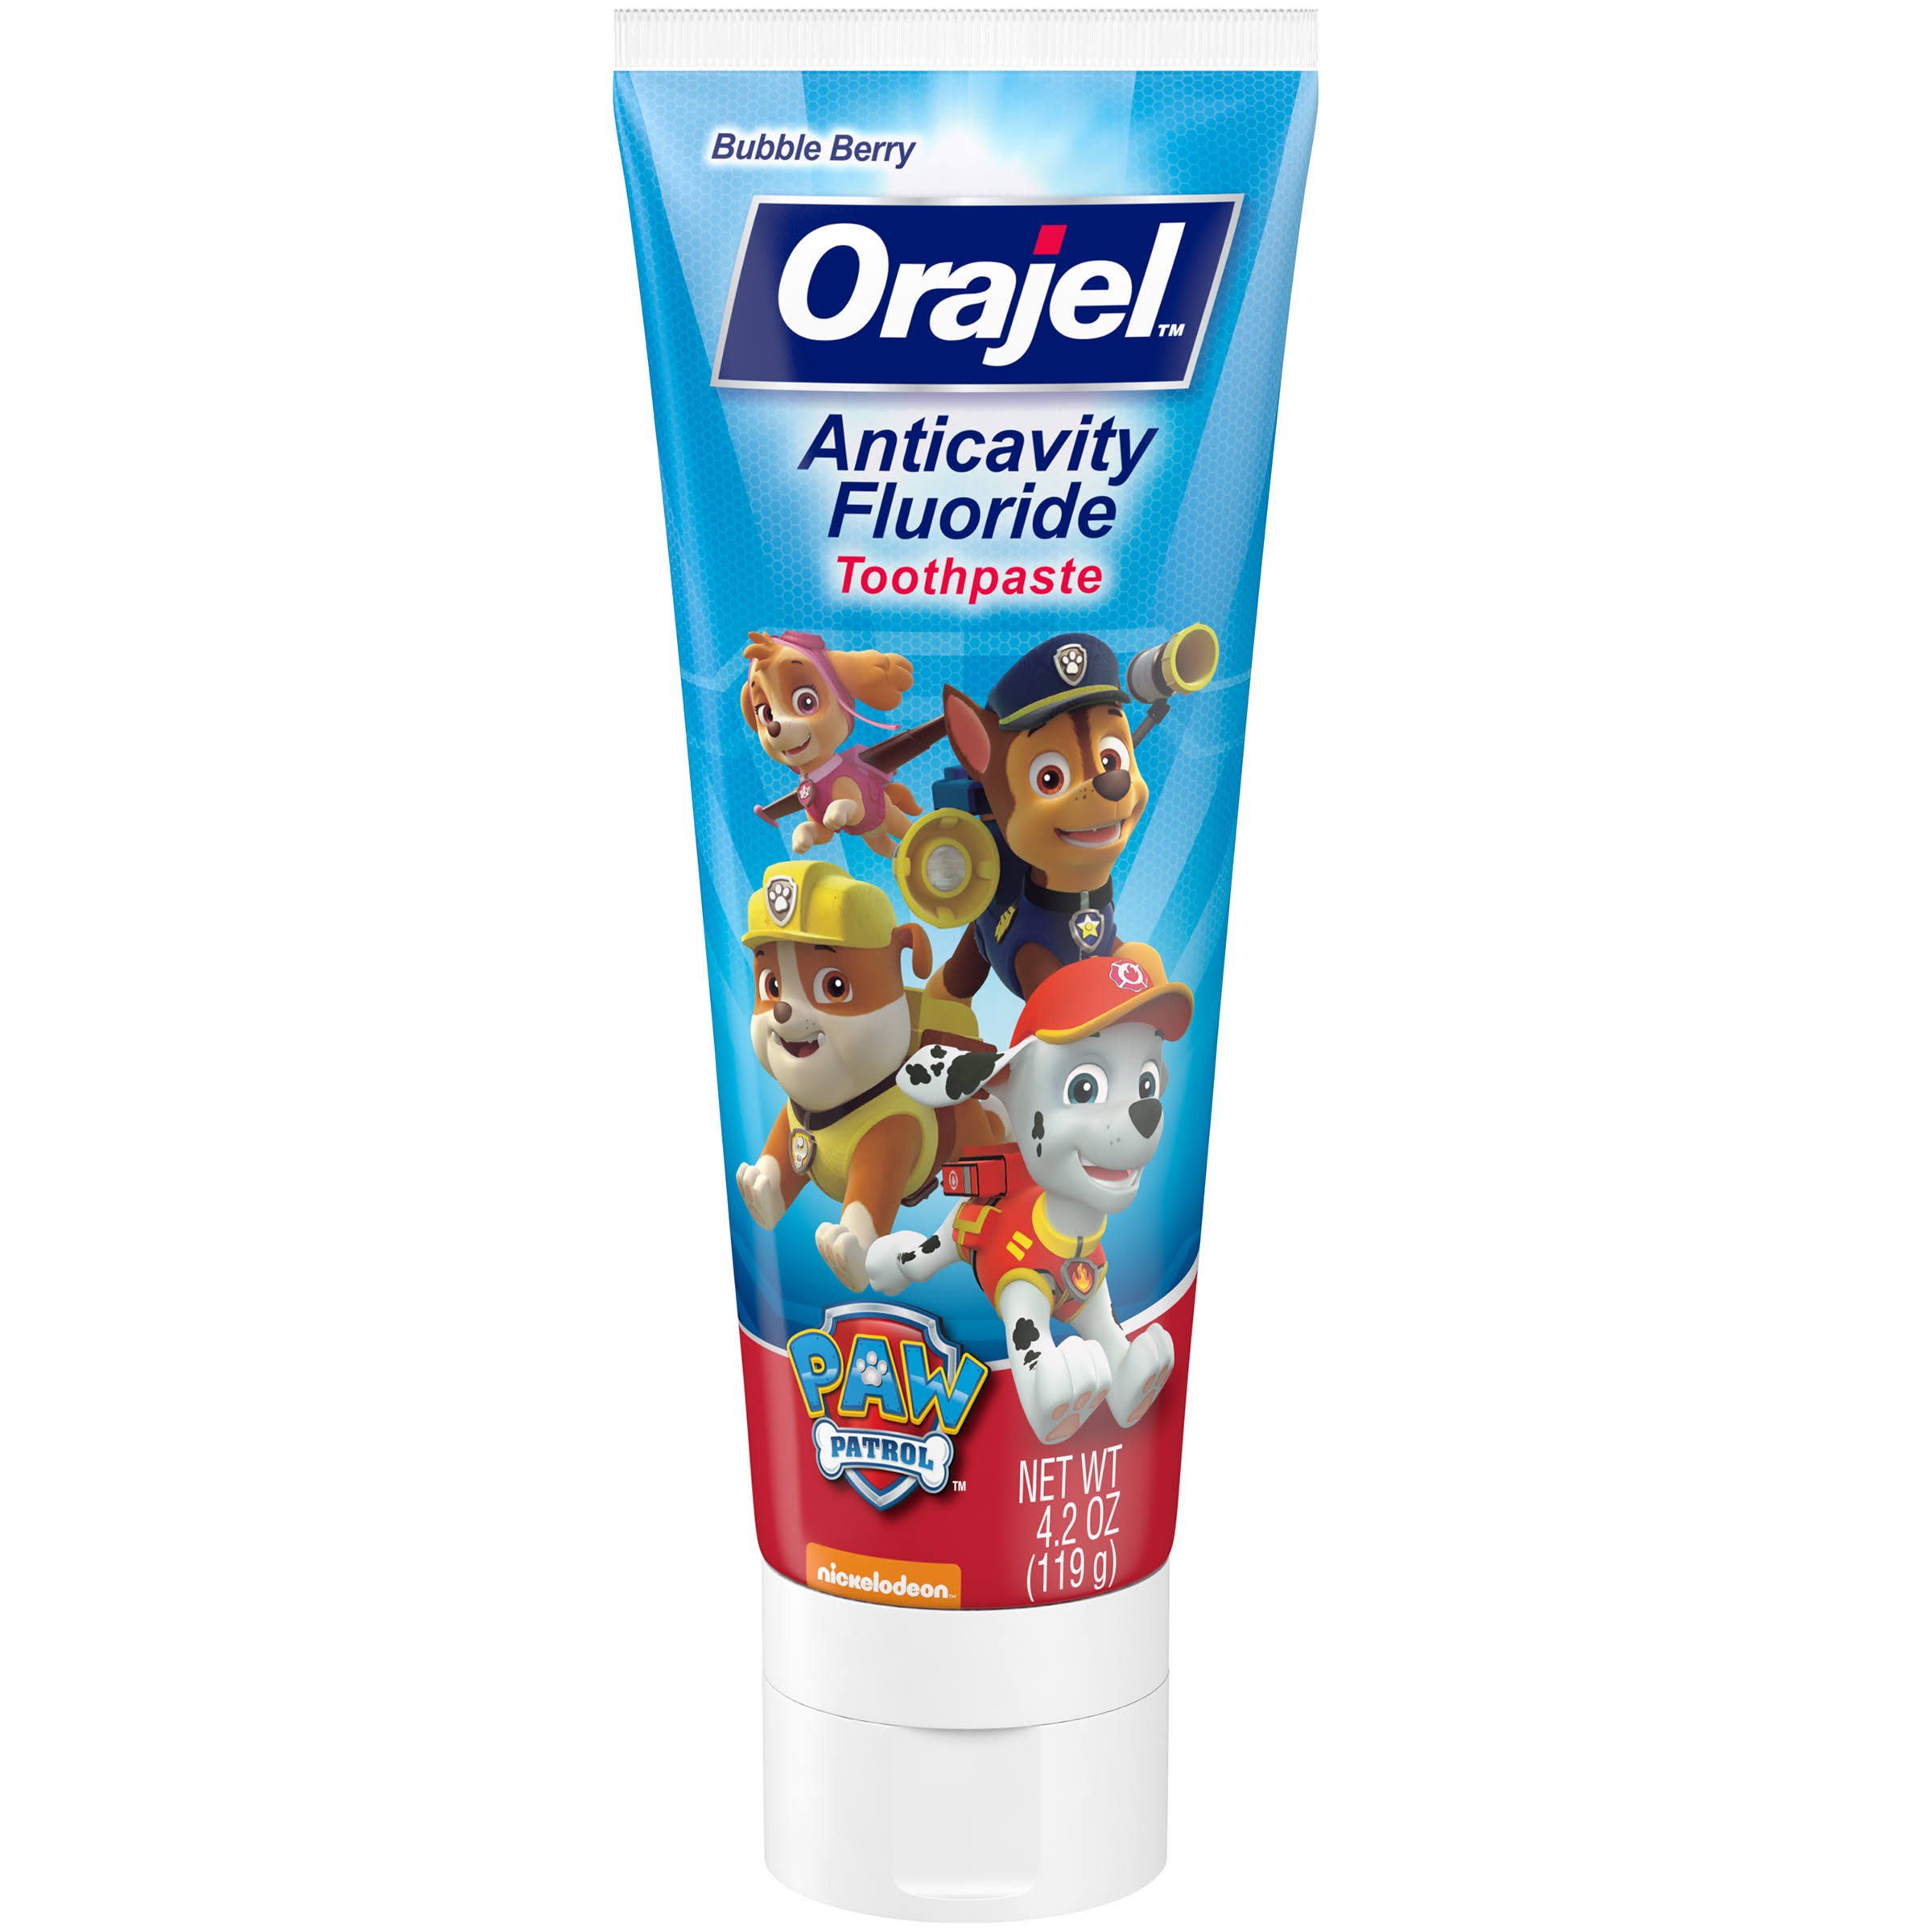 Orajel Paw Patrol Anticavity Fluoride Toothpaste - 4.2oz, Bubble Berry